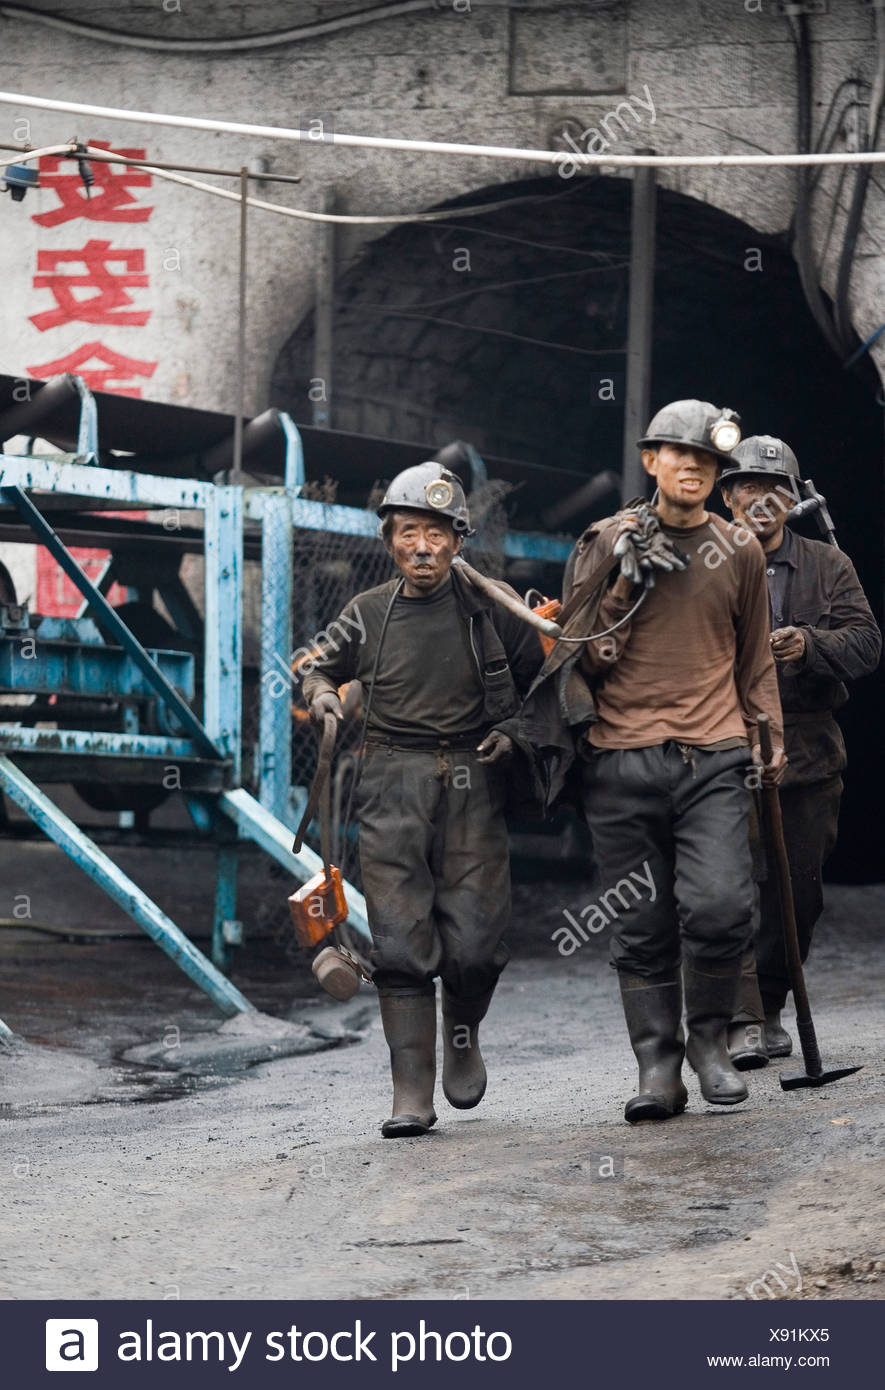 Coal miners in Shanxi China. - Stock Image